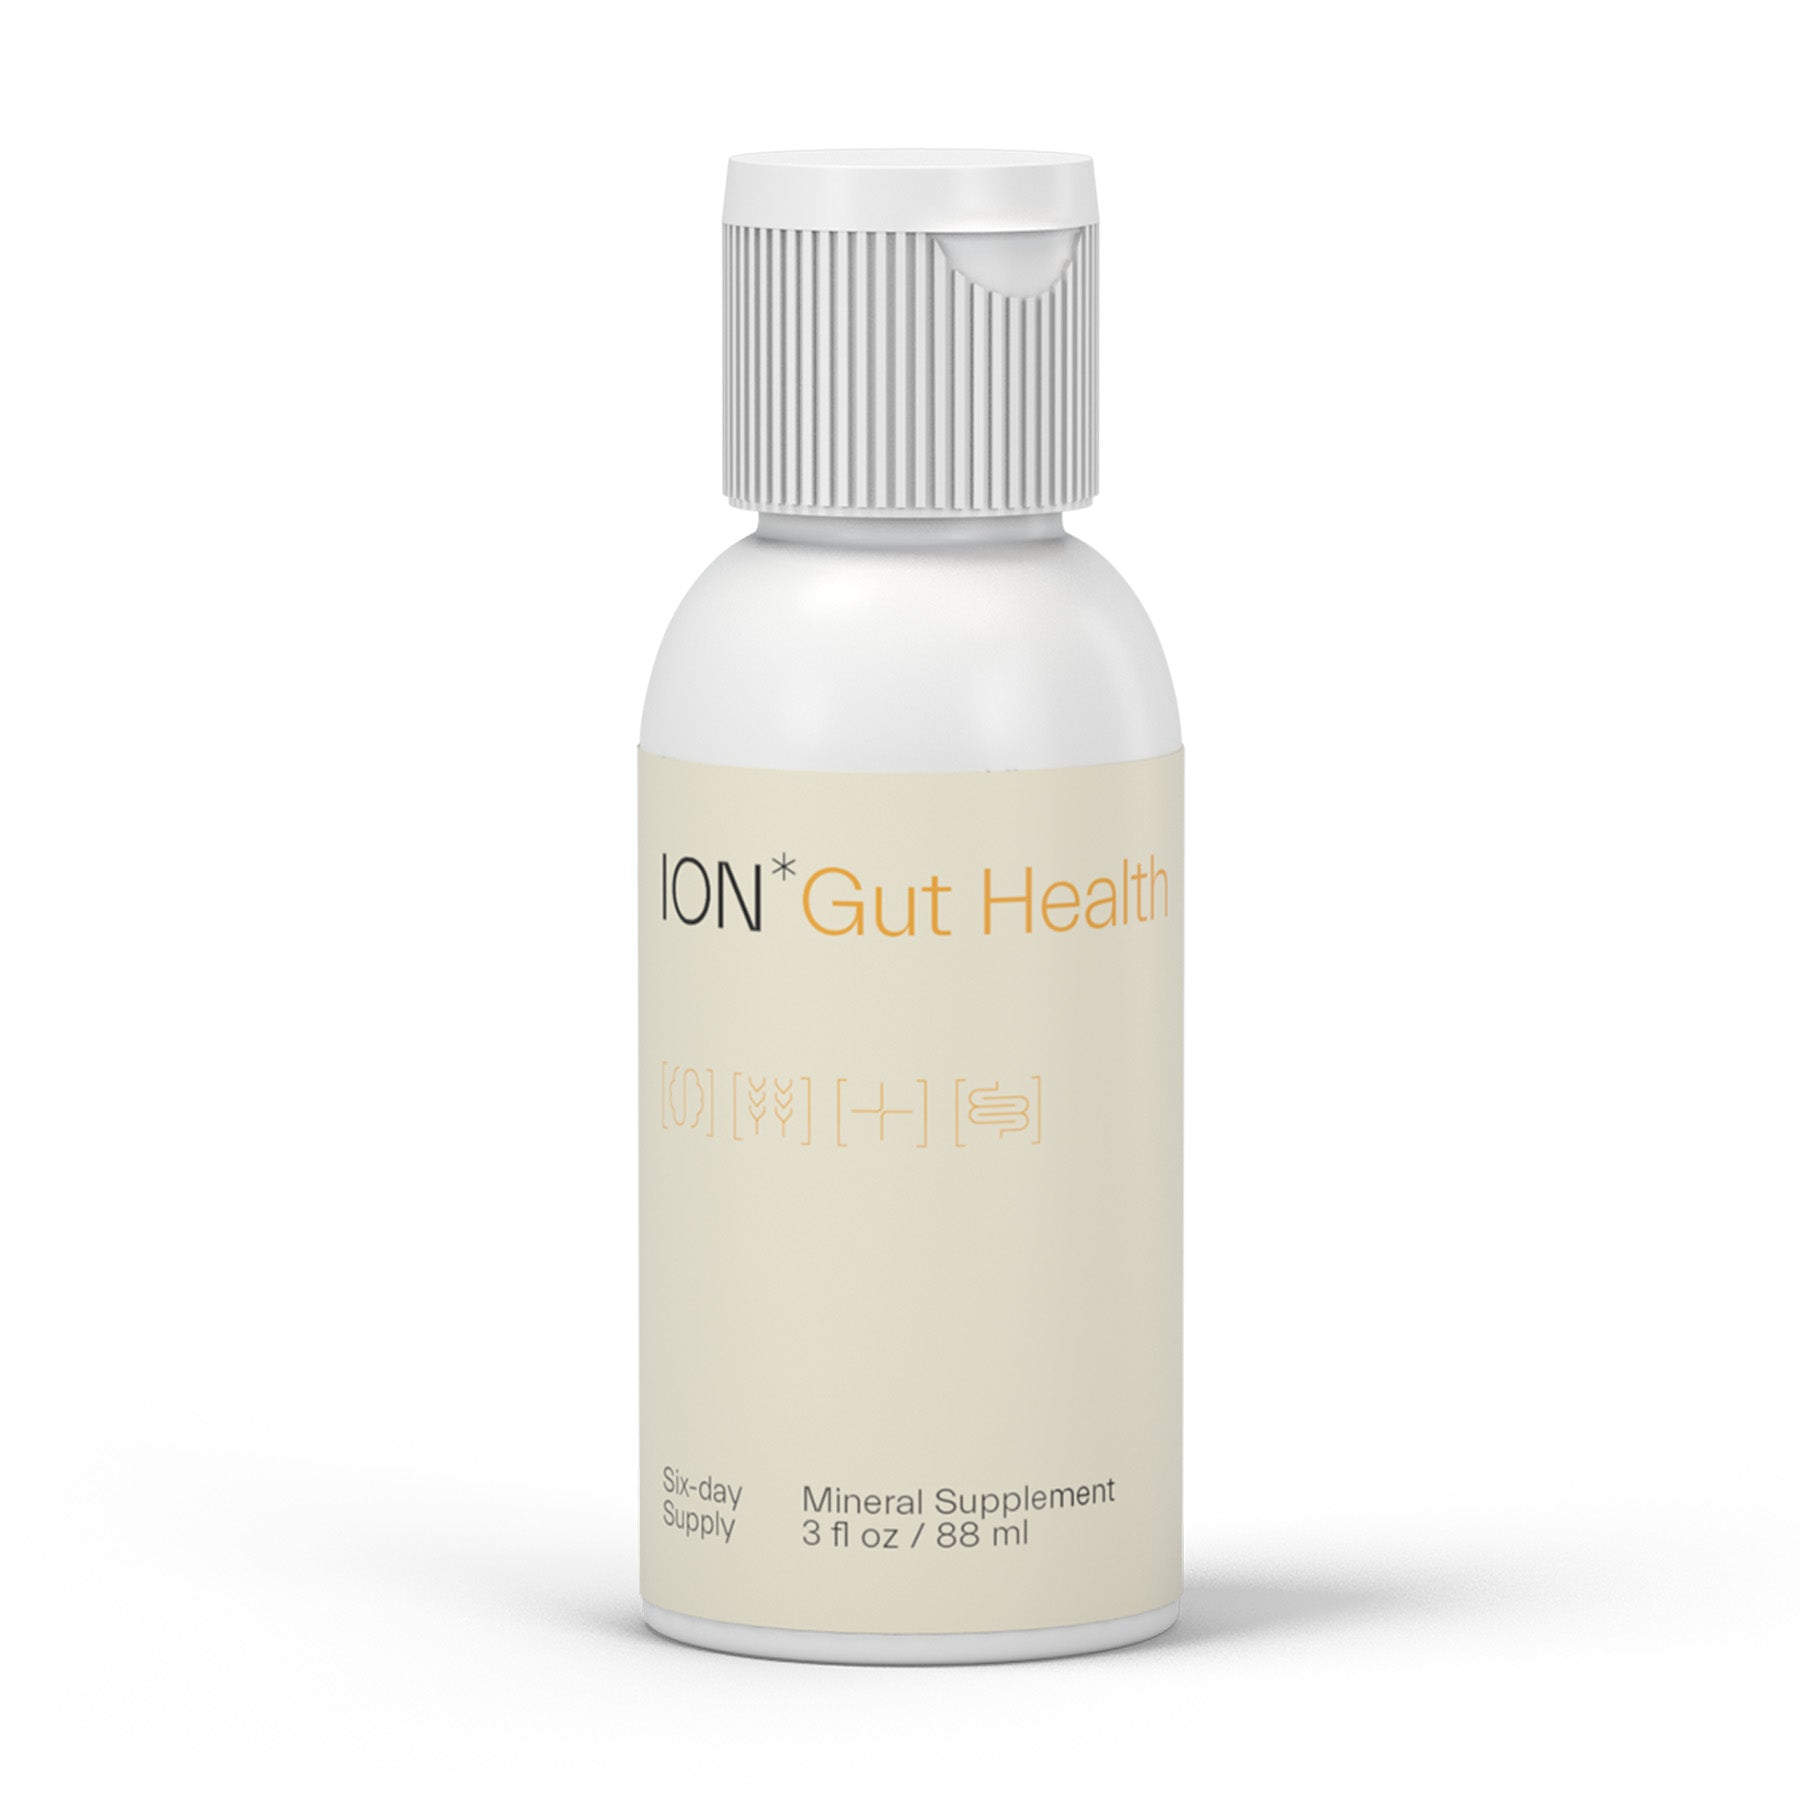 ION*Gut Health 3oz